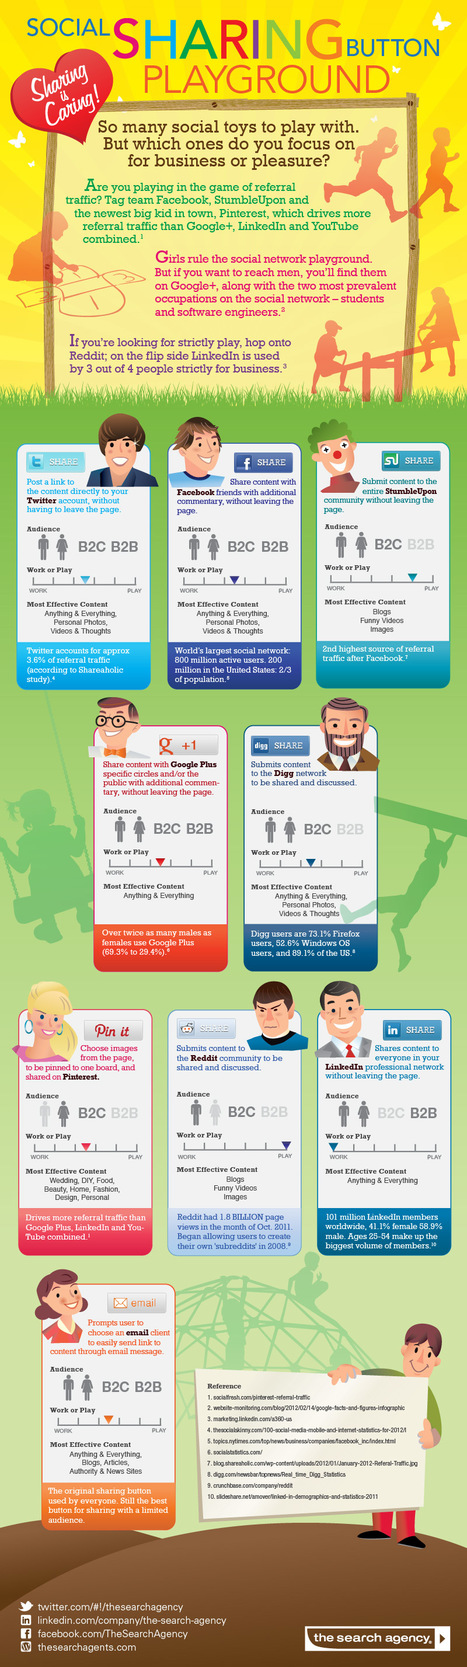 INFOGRAPHIC: Social Sharing Button Playground | The Search Agents | Cloud Central | Scoop.it